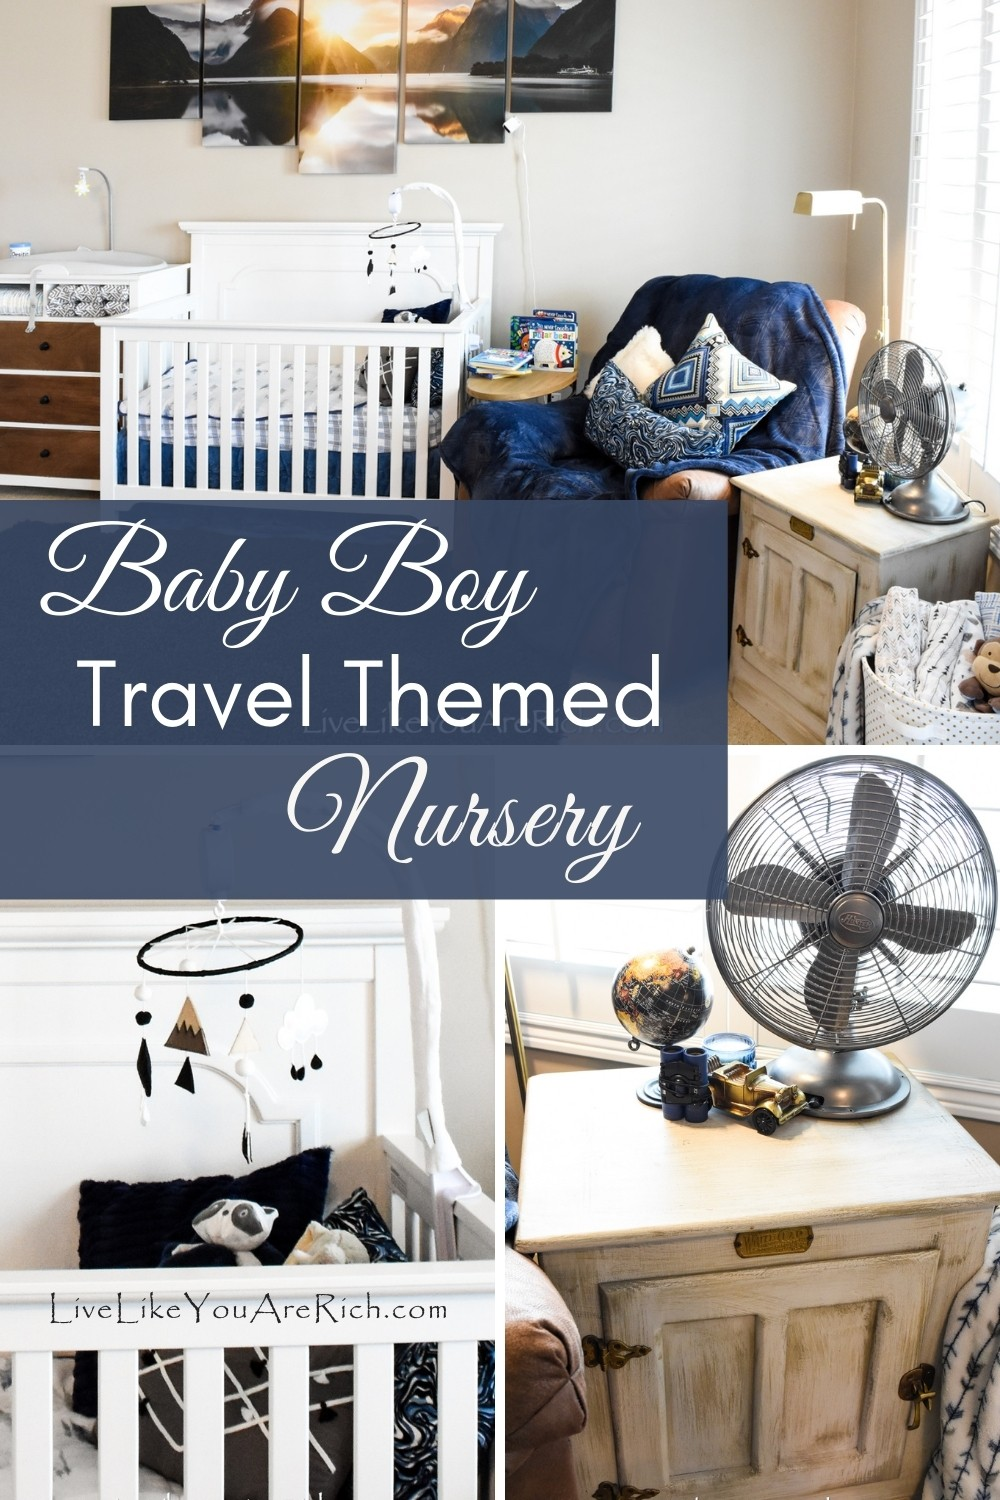 This travel themed boy nursery post give you ideas on how to make a functional, cute, and inexpensive travel themed nursery for your little one.